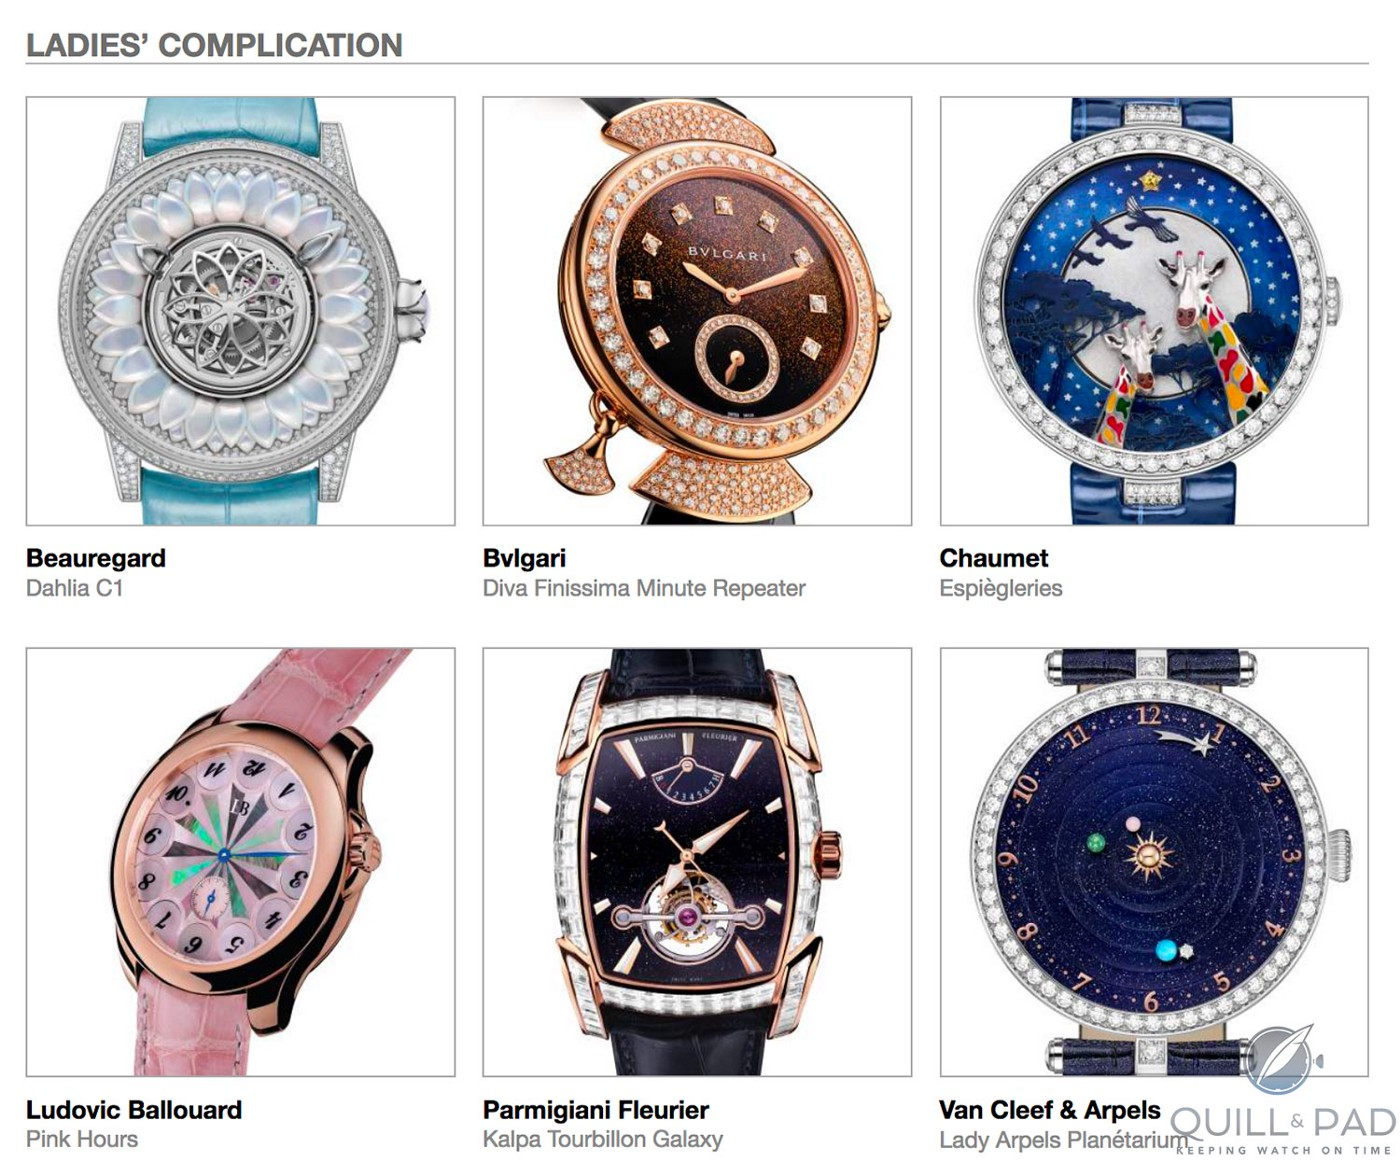 Ladies Complication category pre-selected watches in the 2018 GPHG, clockwise from top left: Beauregard Dahlia C1, Bulgari Diva Finissima Minute Repeater, Chaumet Espiègleries, Ludovic Ballouard Pink Hours, Parmigiani Fleurier Kalpa Tourbillon Galaxy, and Van Cleef & Arpels Lady Arpels Planétarium